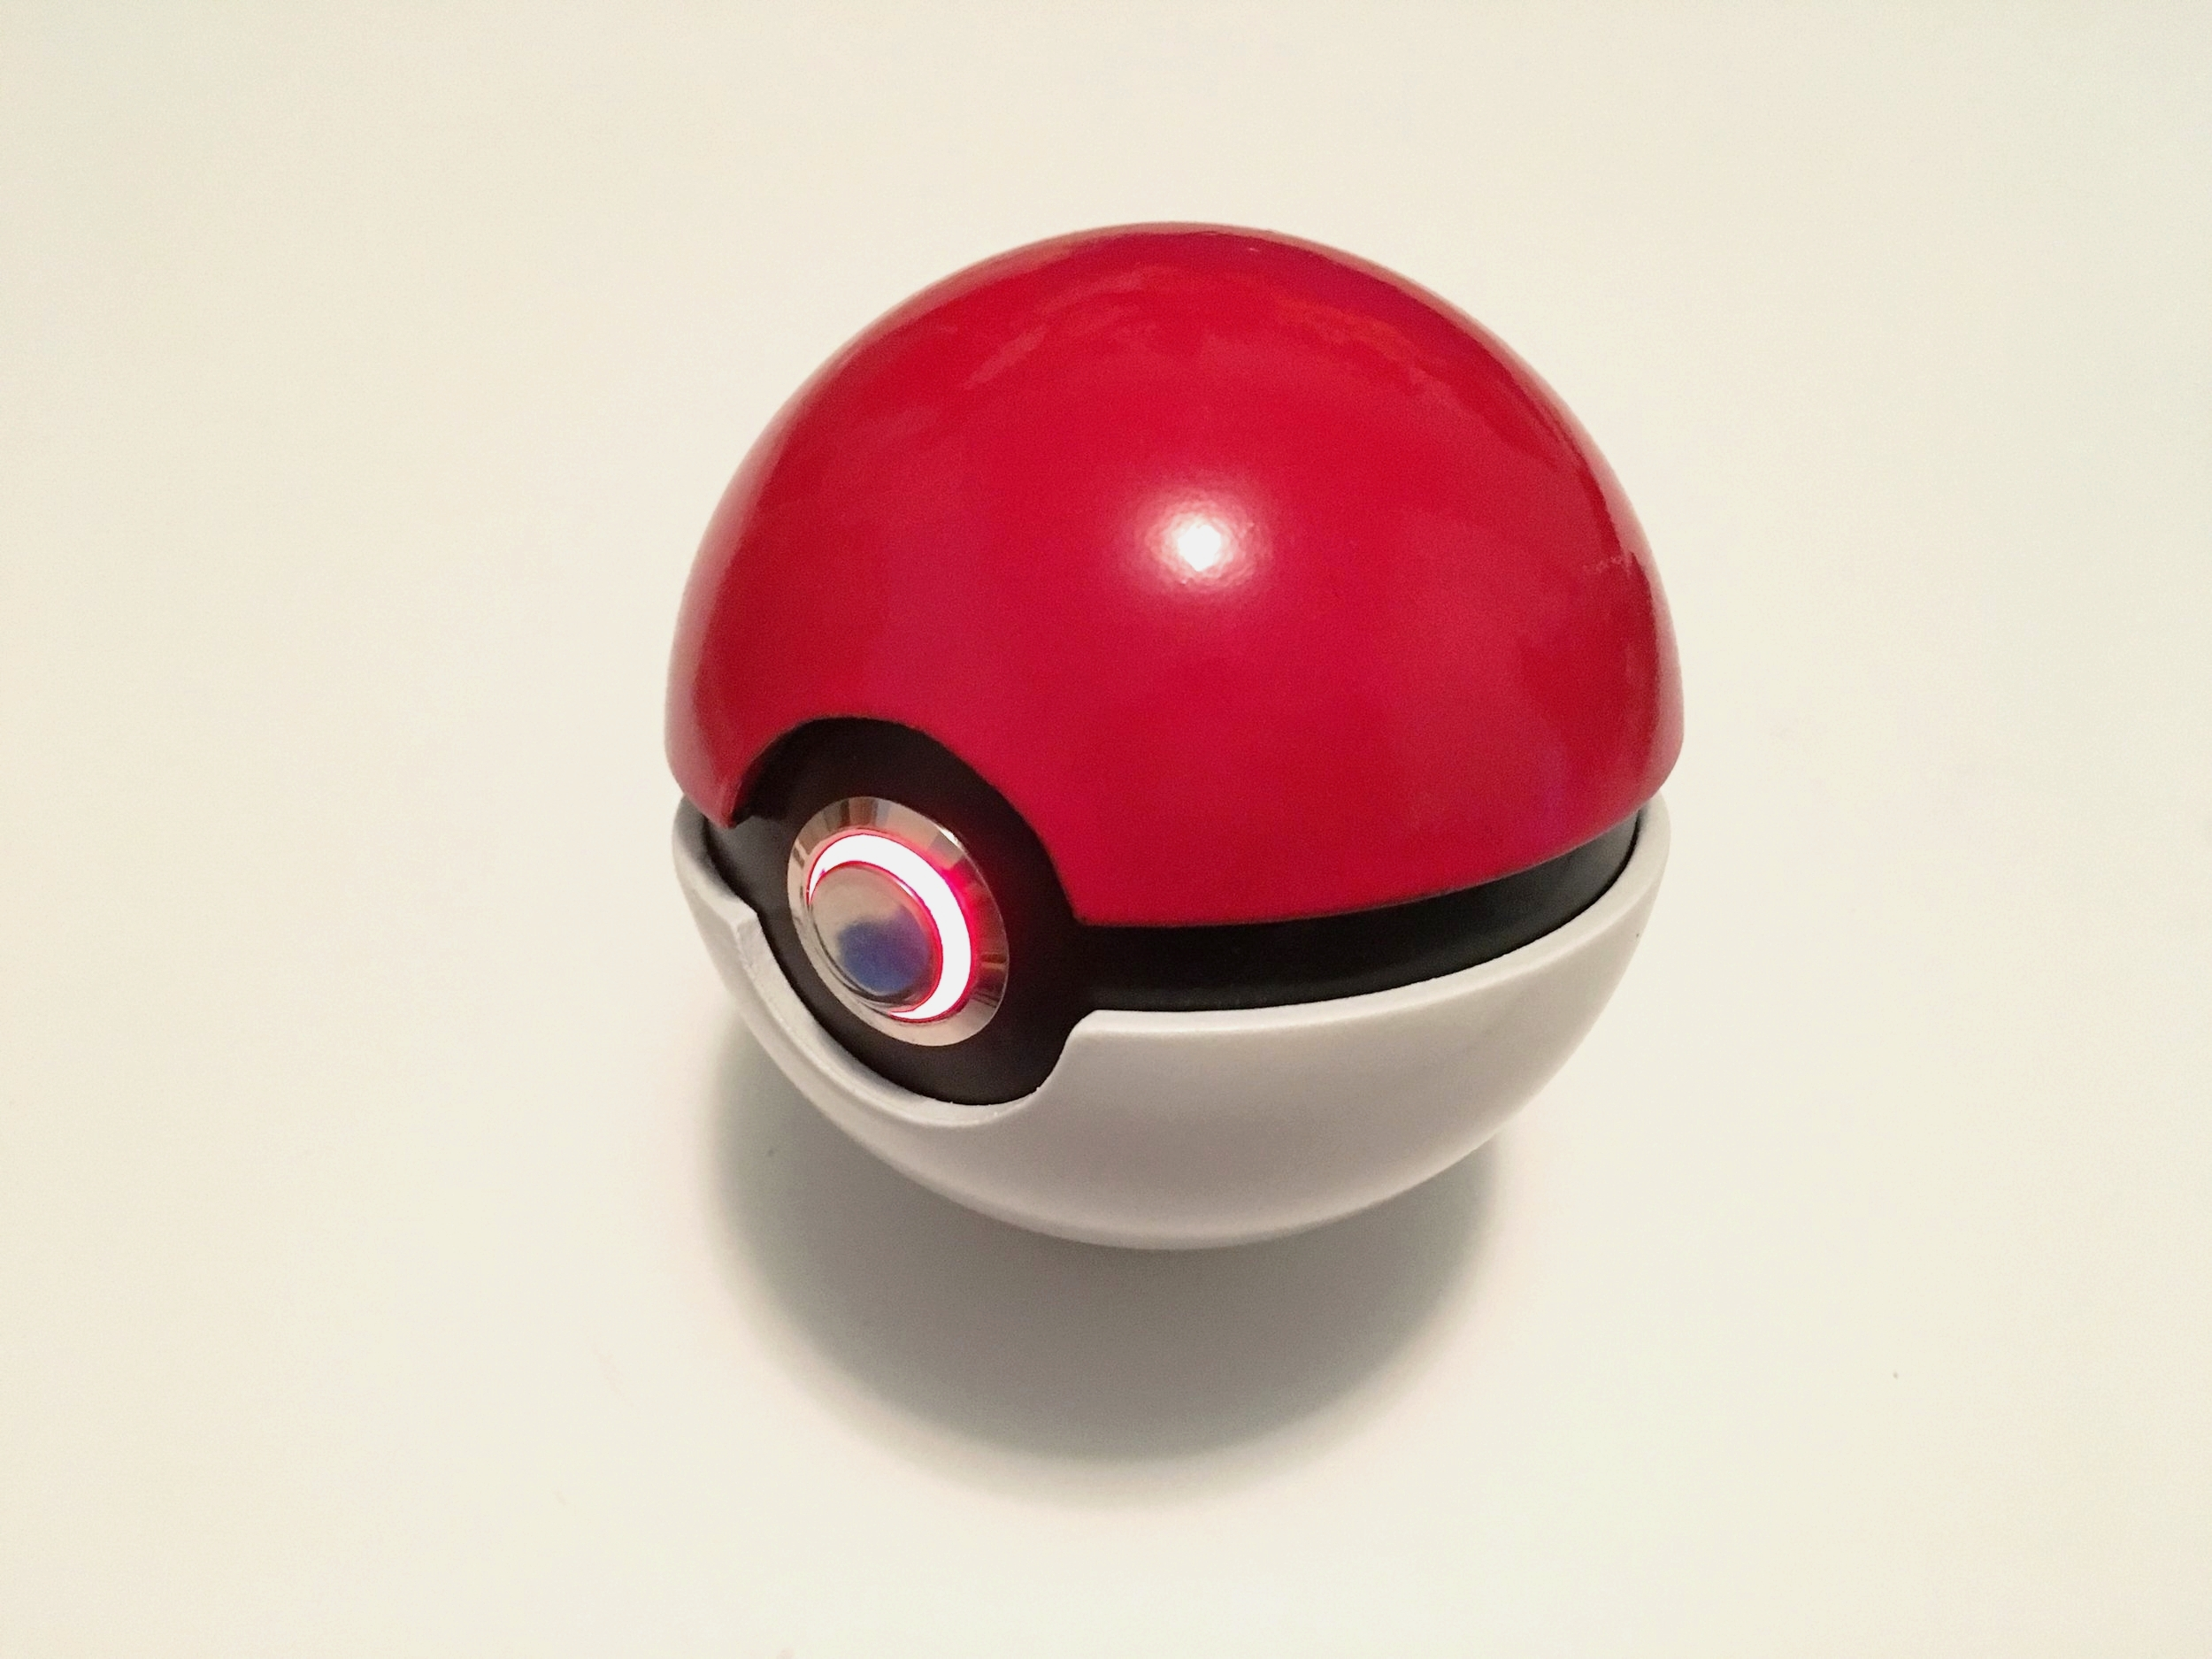 Pokéball  3D Printing | Magnetic Assembly | Finishing